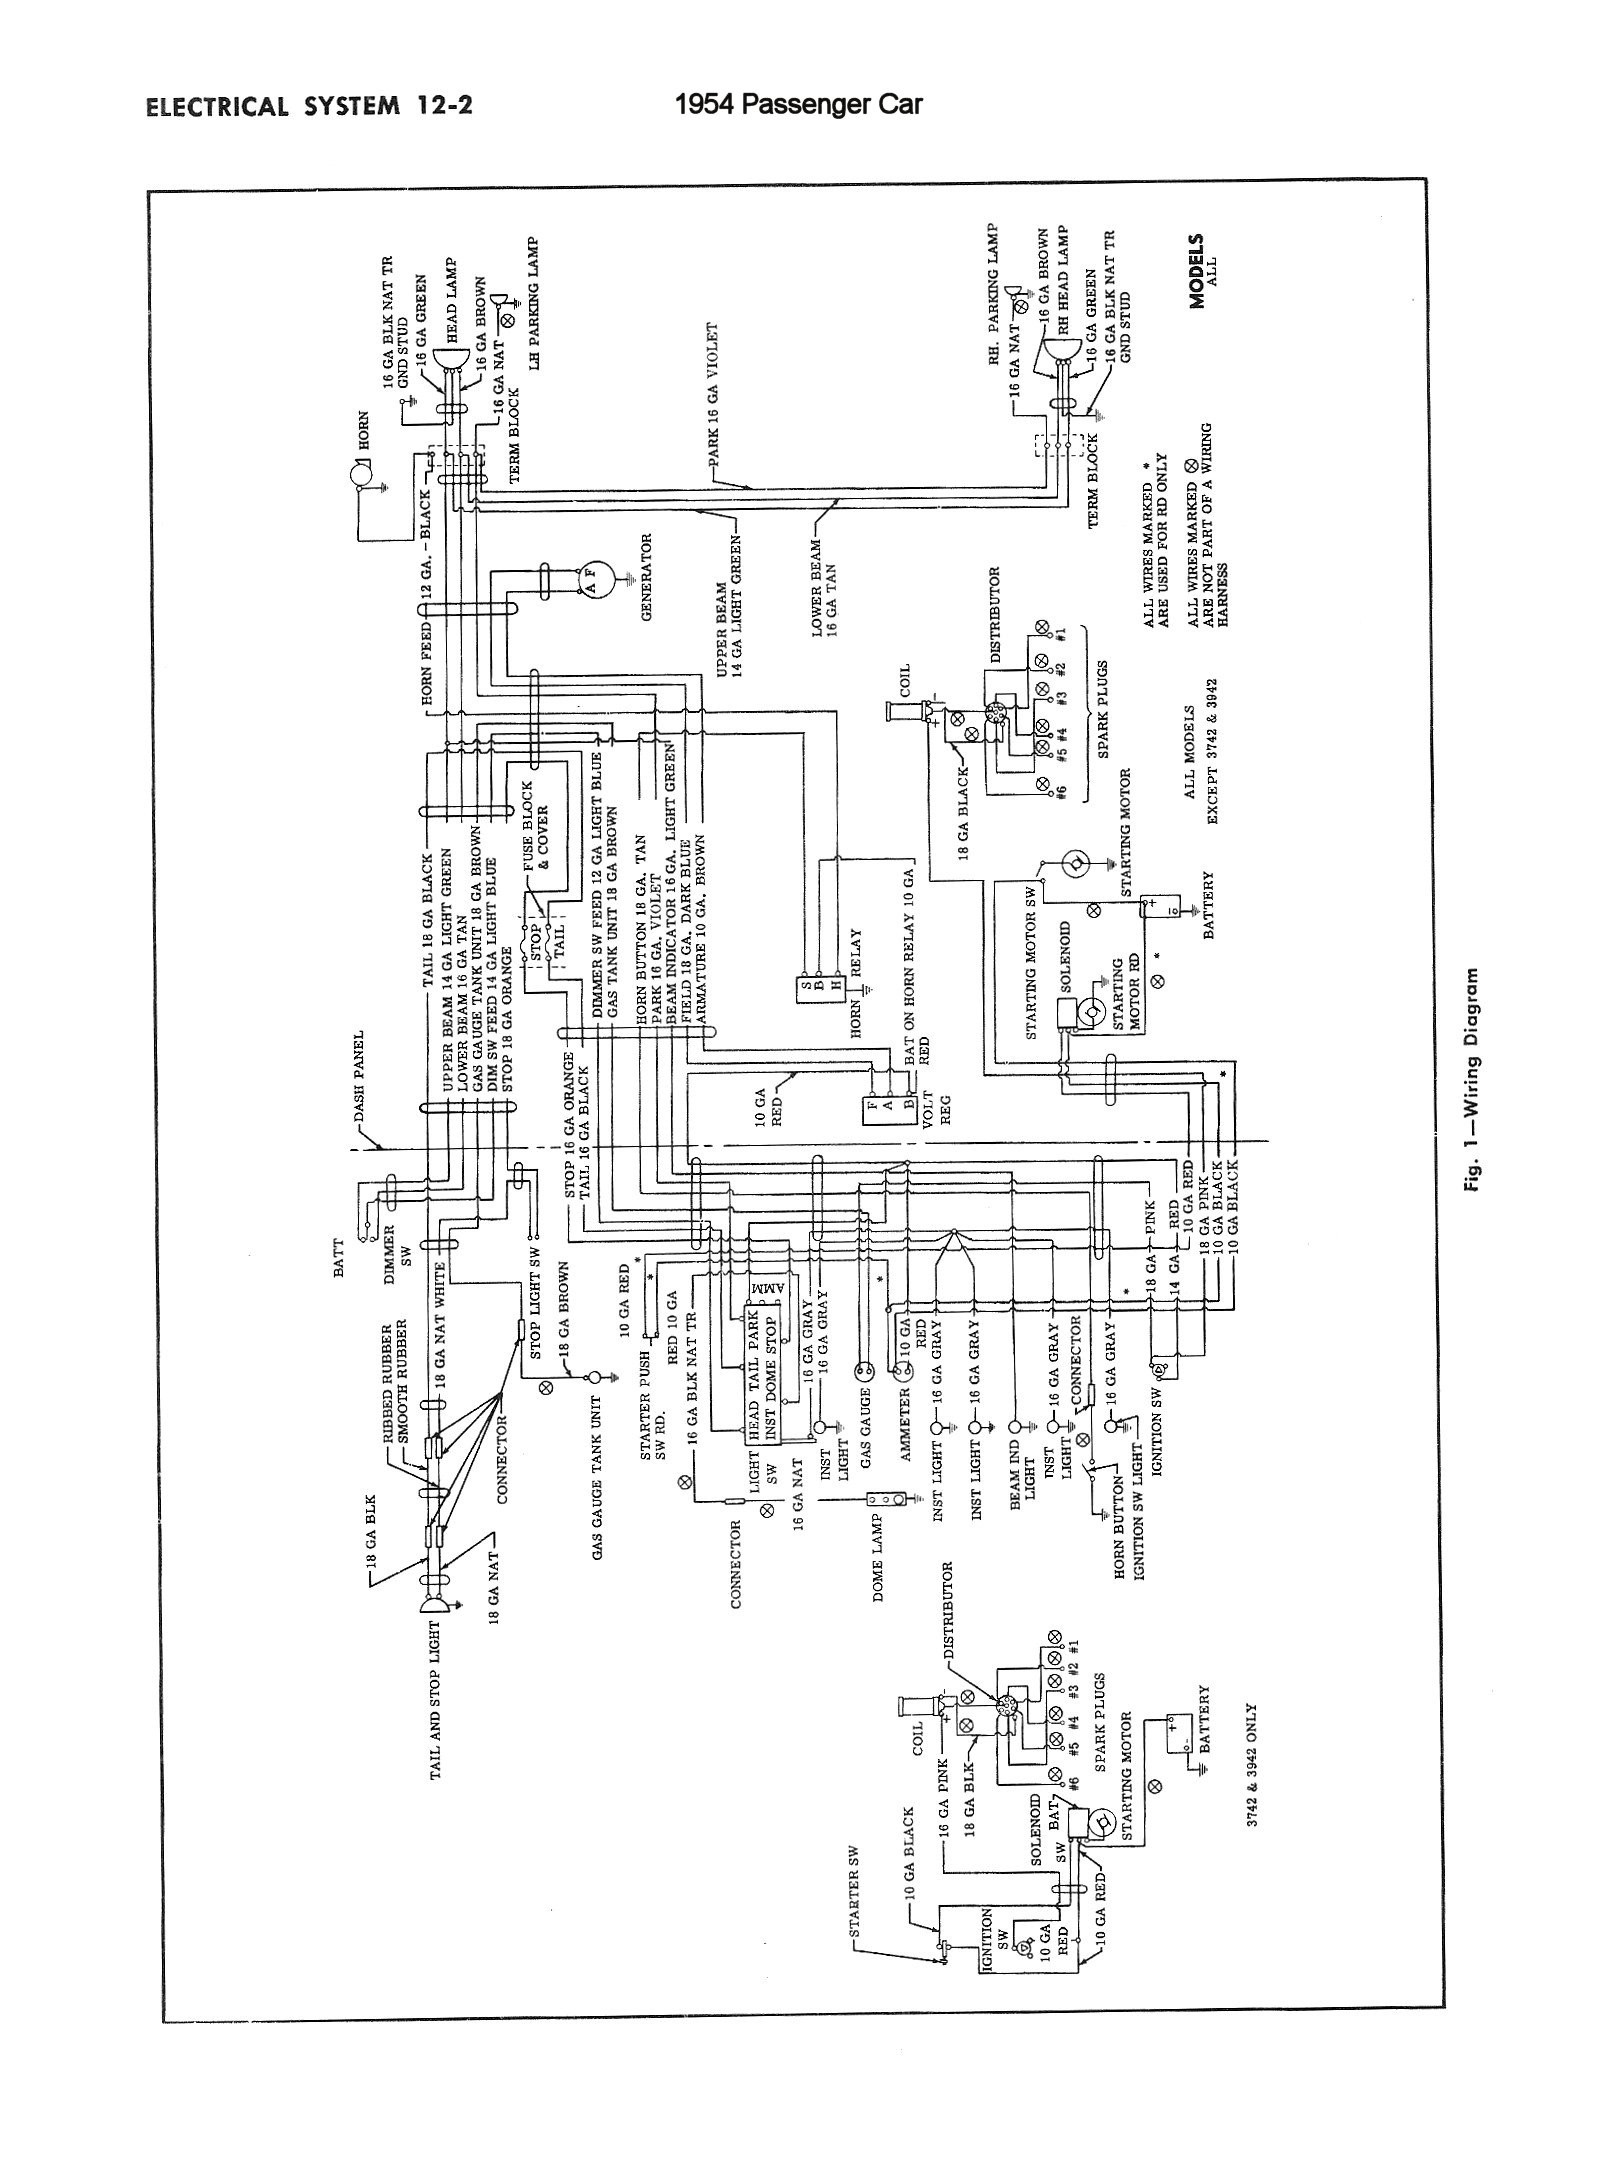 hight resolution of 1946 gauge wiring diagram wiring diagram 1946 gauge wiring diagram